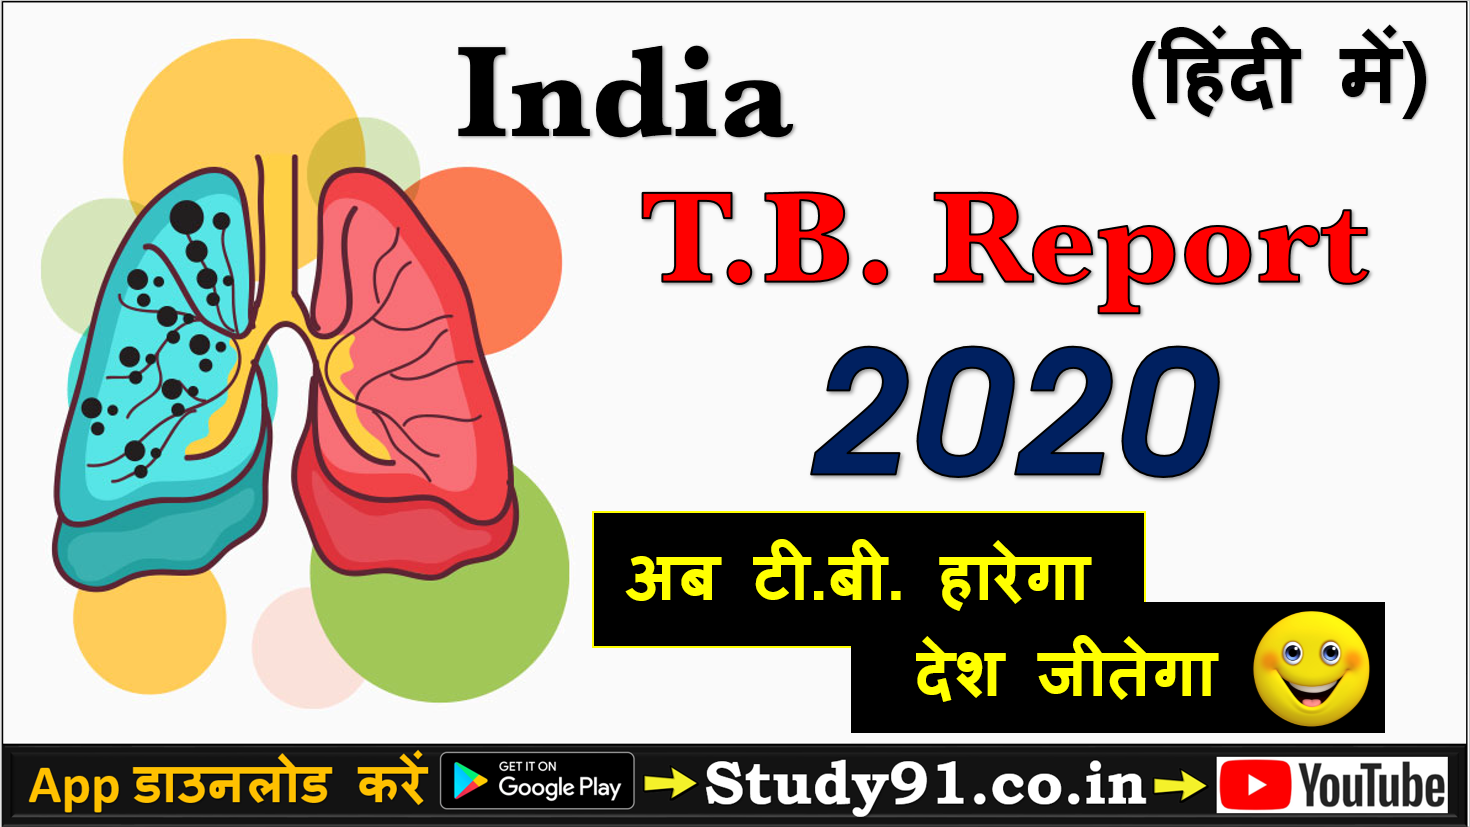 Annual TB Report 2020 By Study91